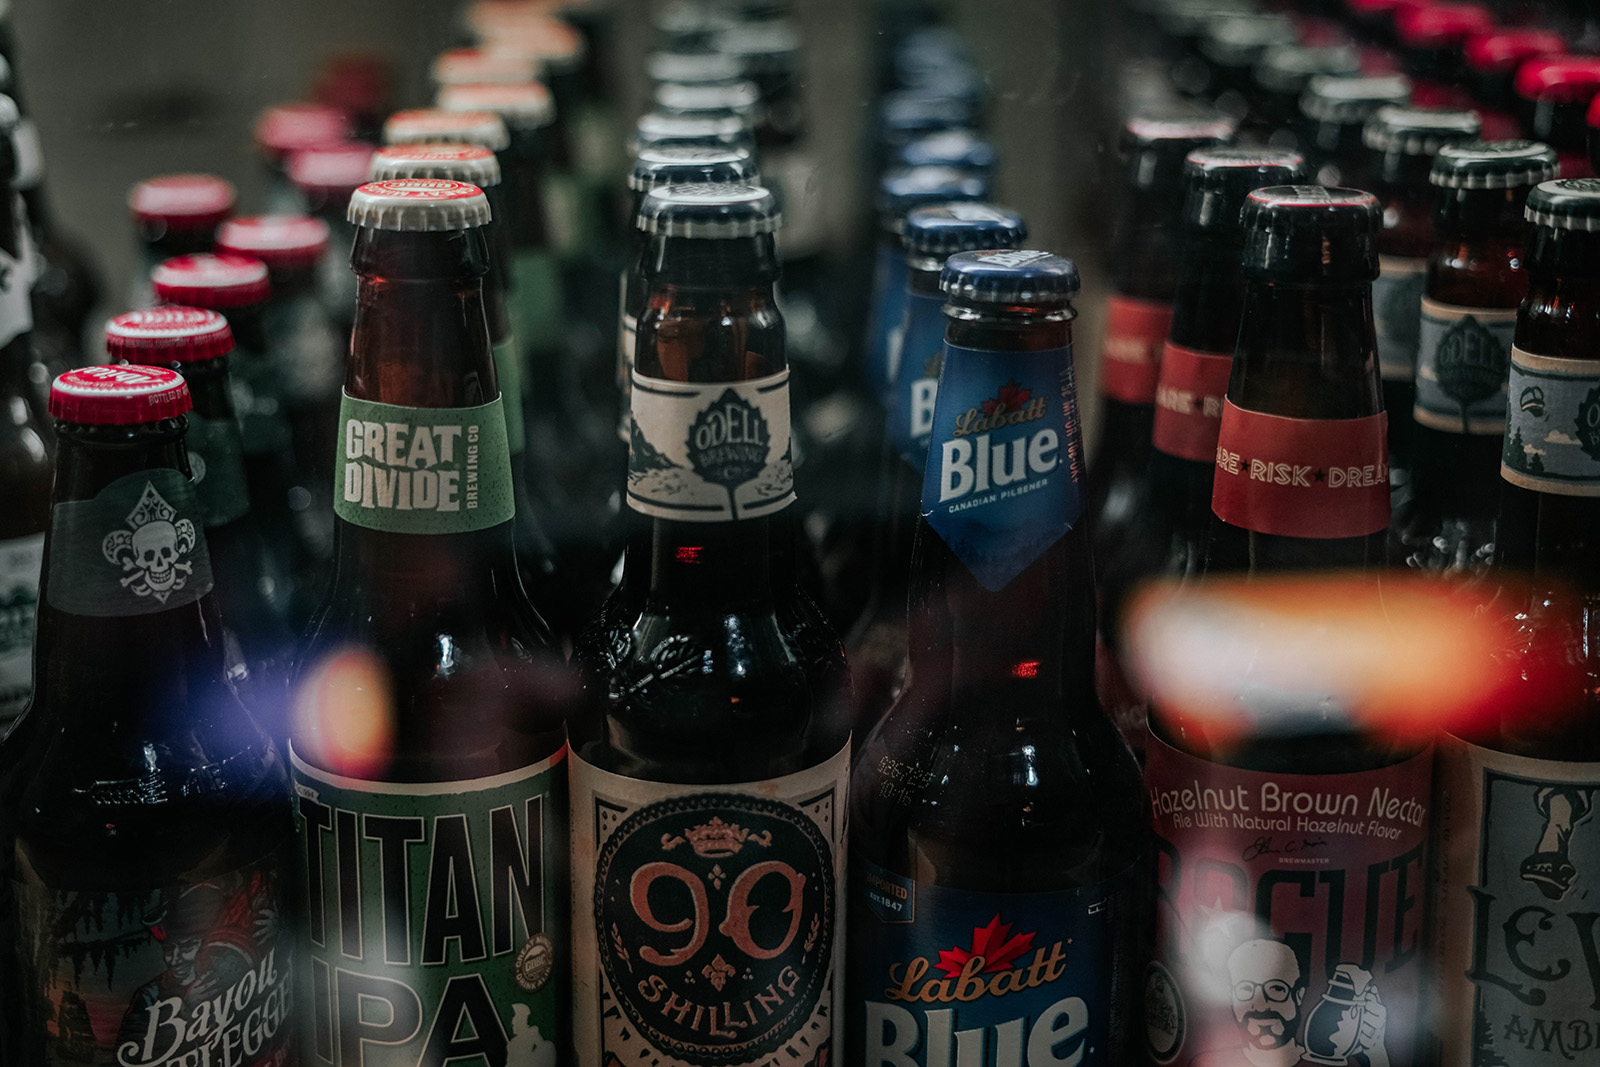 Exploring craft beer breweries is one of the unique things to do in Colorado